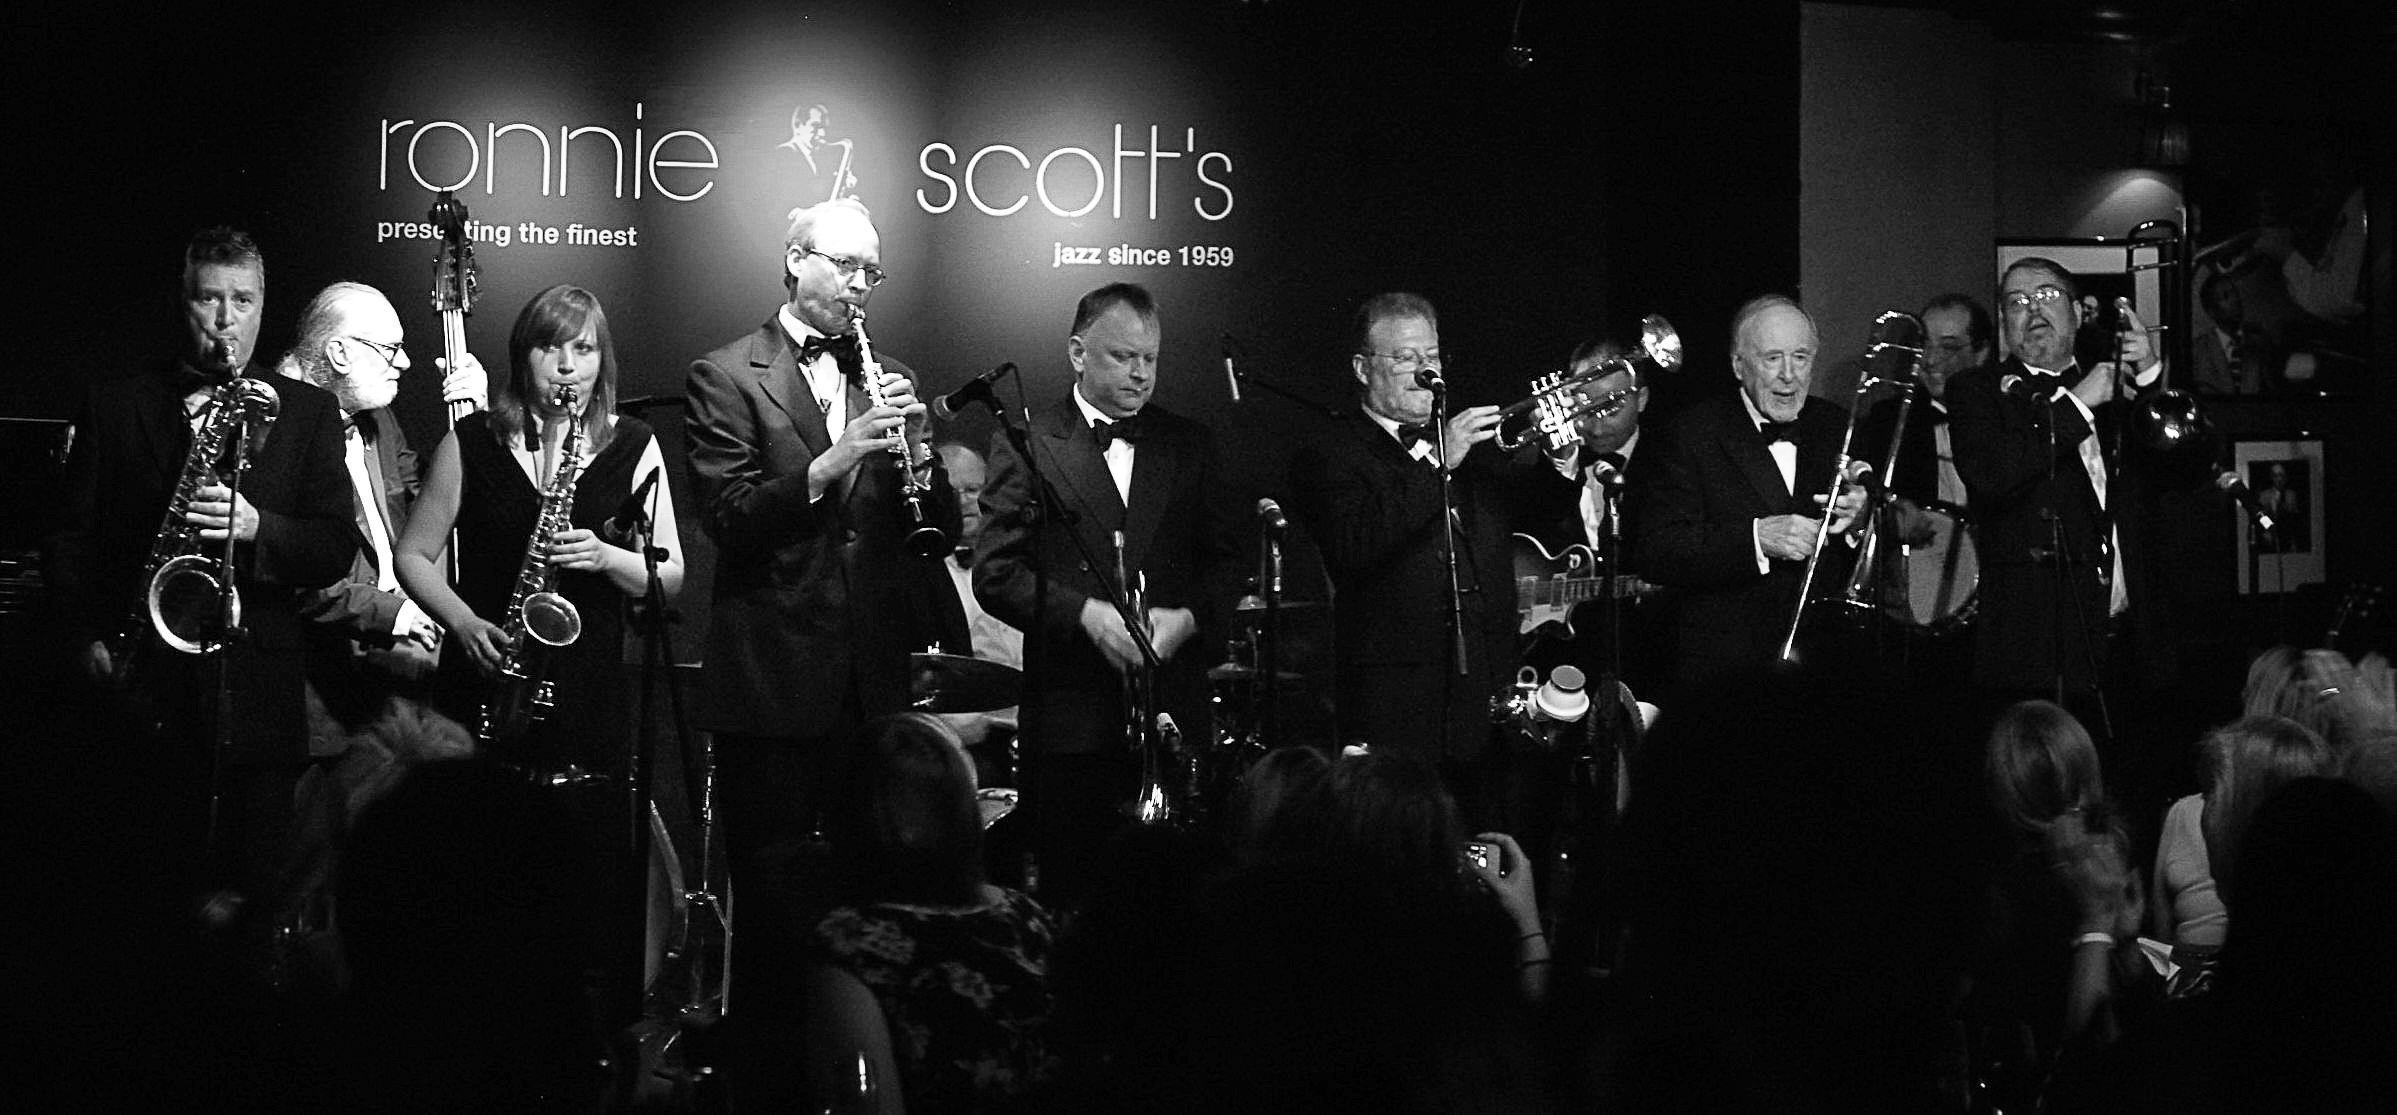 Chris barber and the big chris barber band chris barber jazz sandy letham sent us these 2 great photos from the 2013 concert at ronnie scotts club in london malvernweather Images